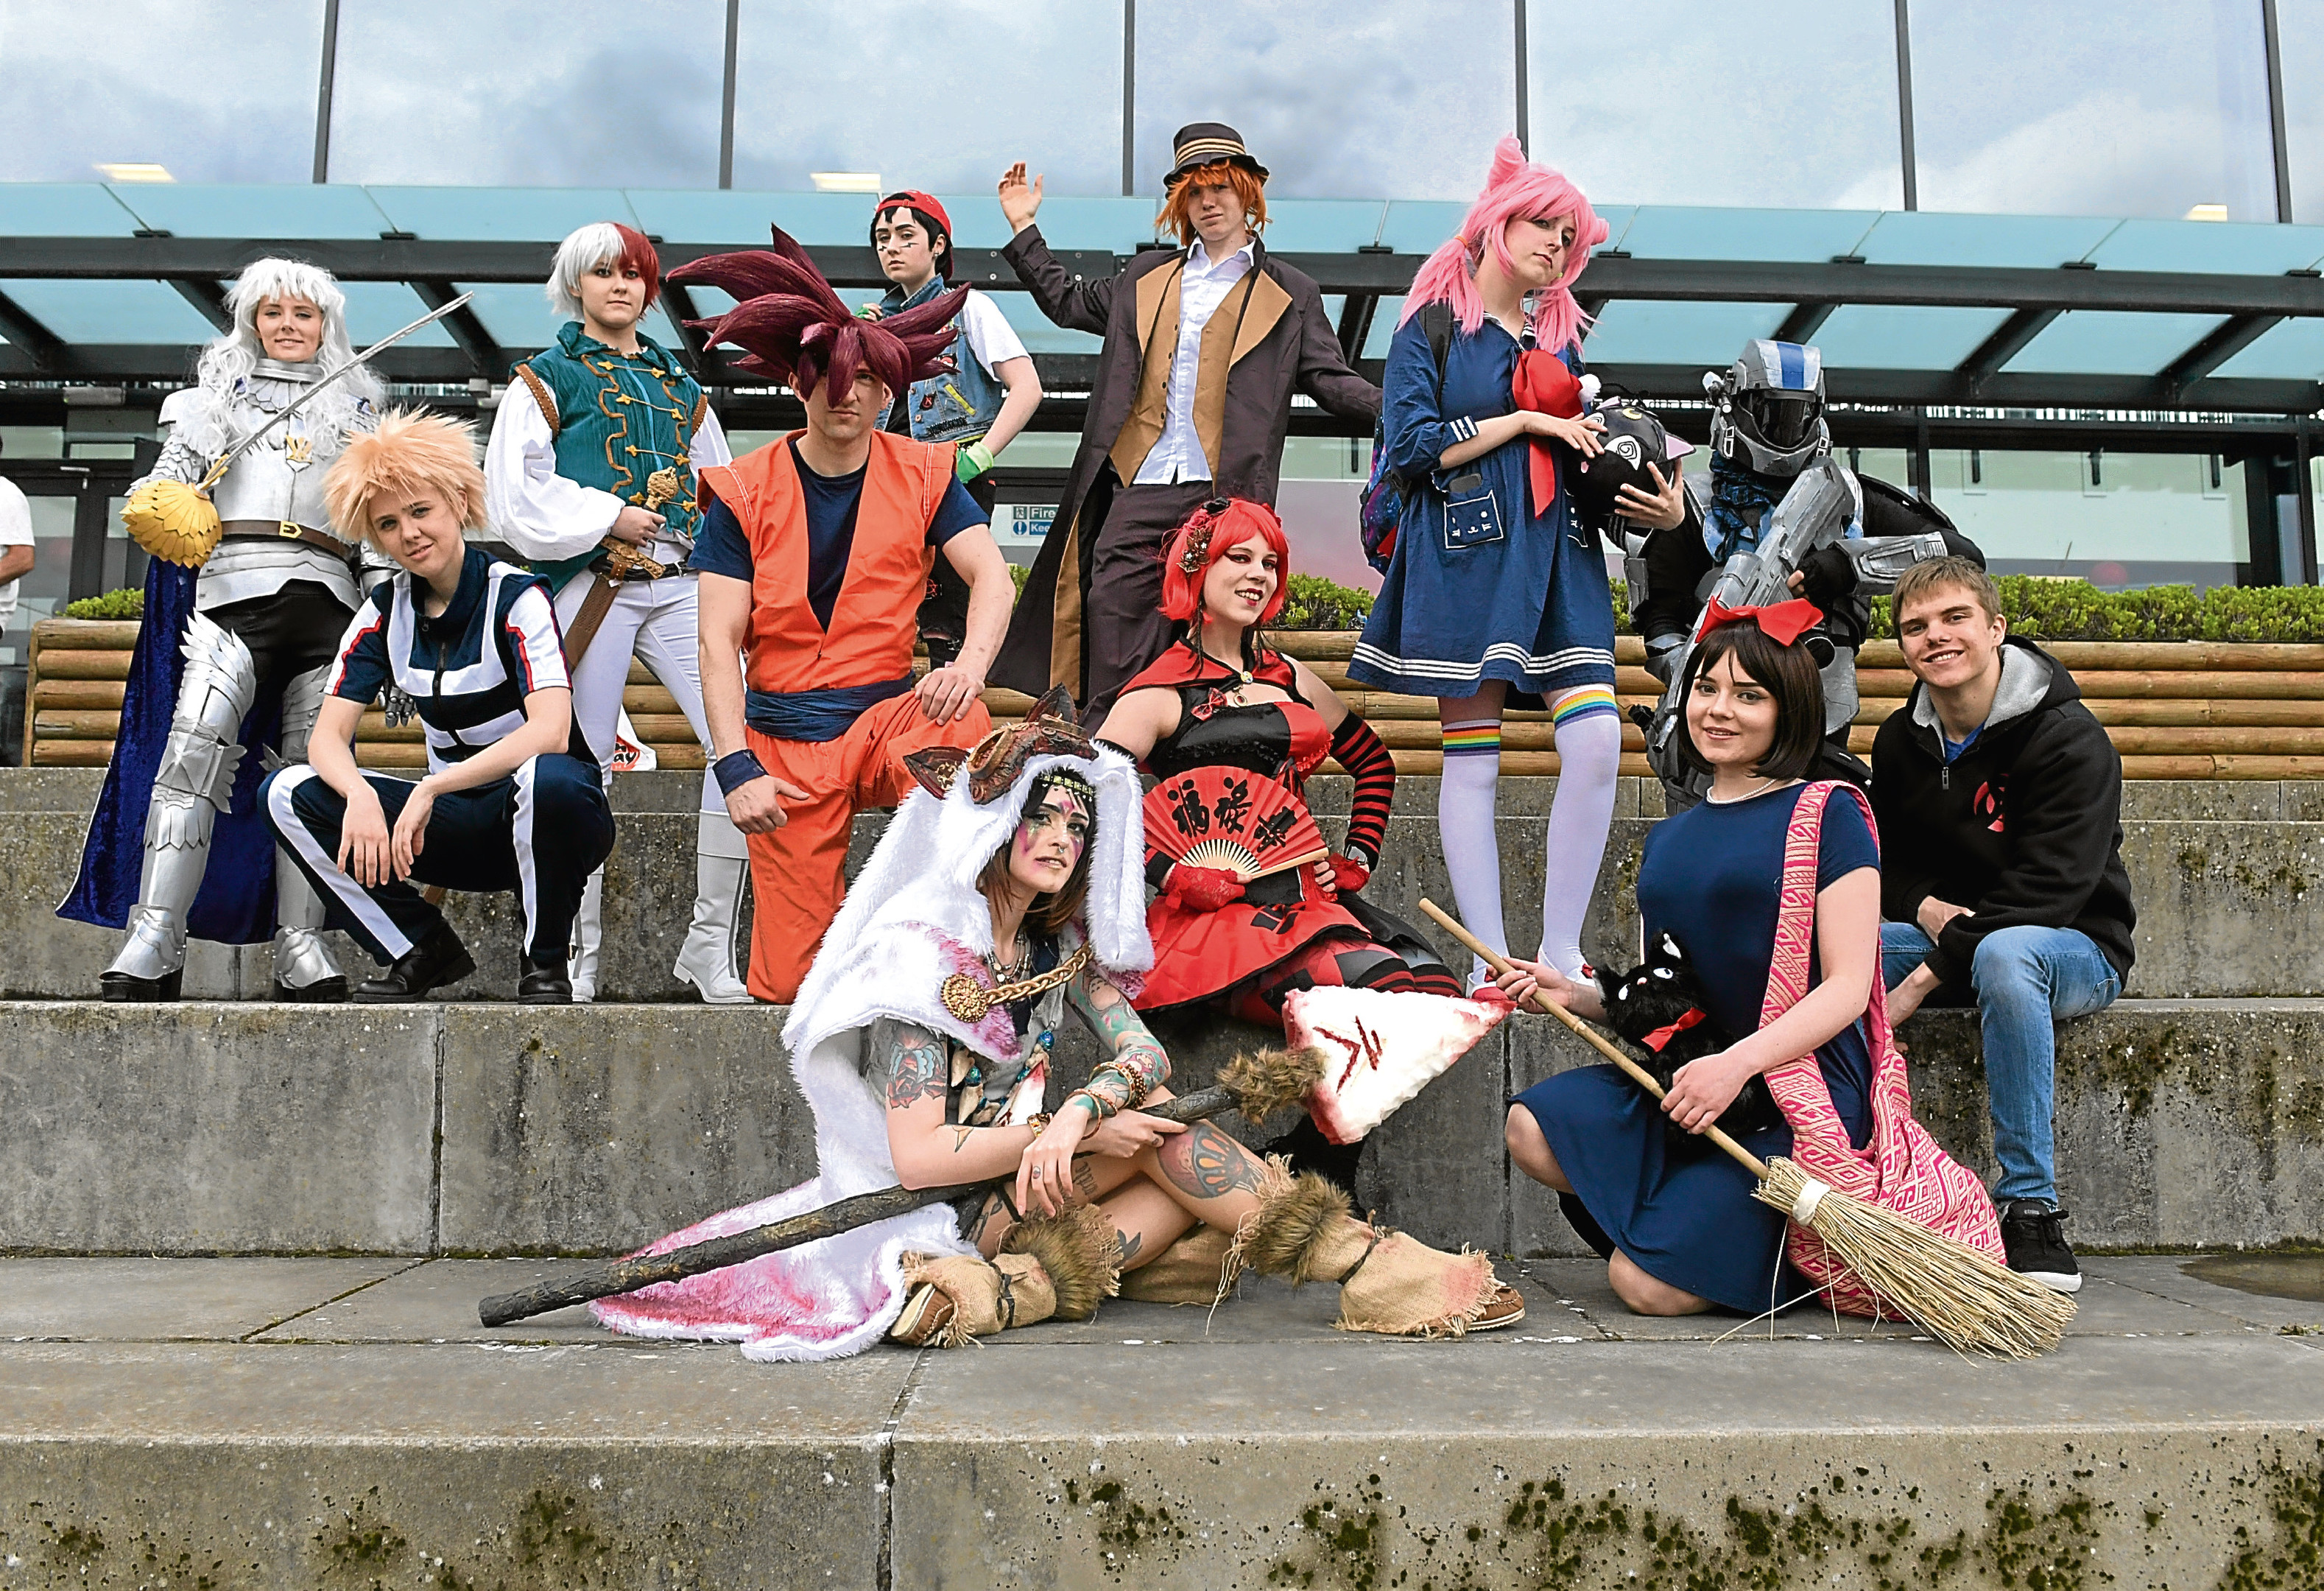 The judges and competitors of the Cosplay competition.